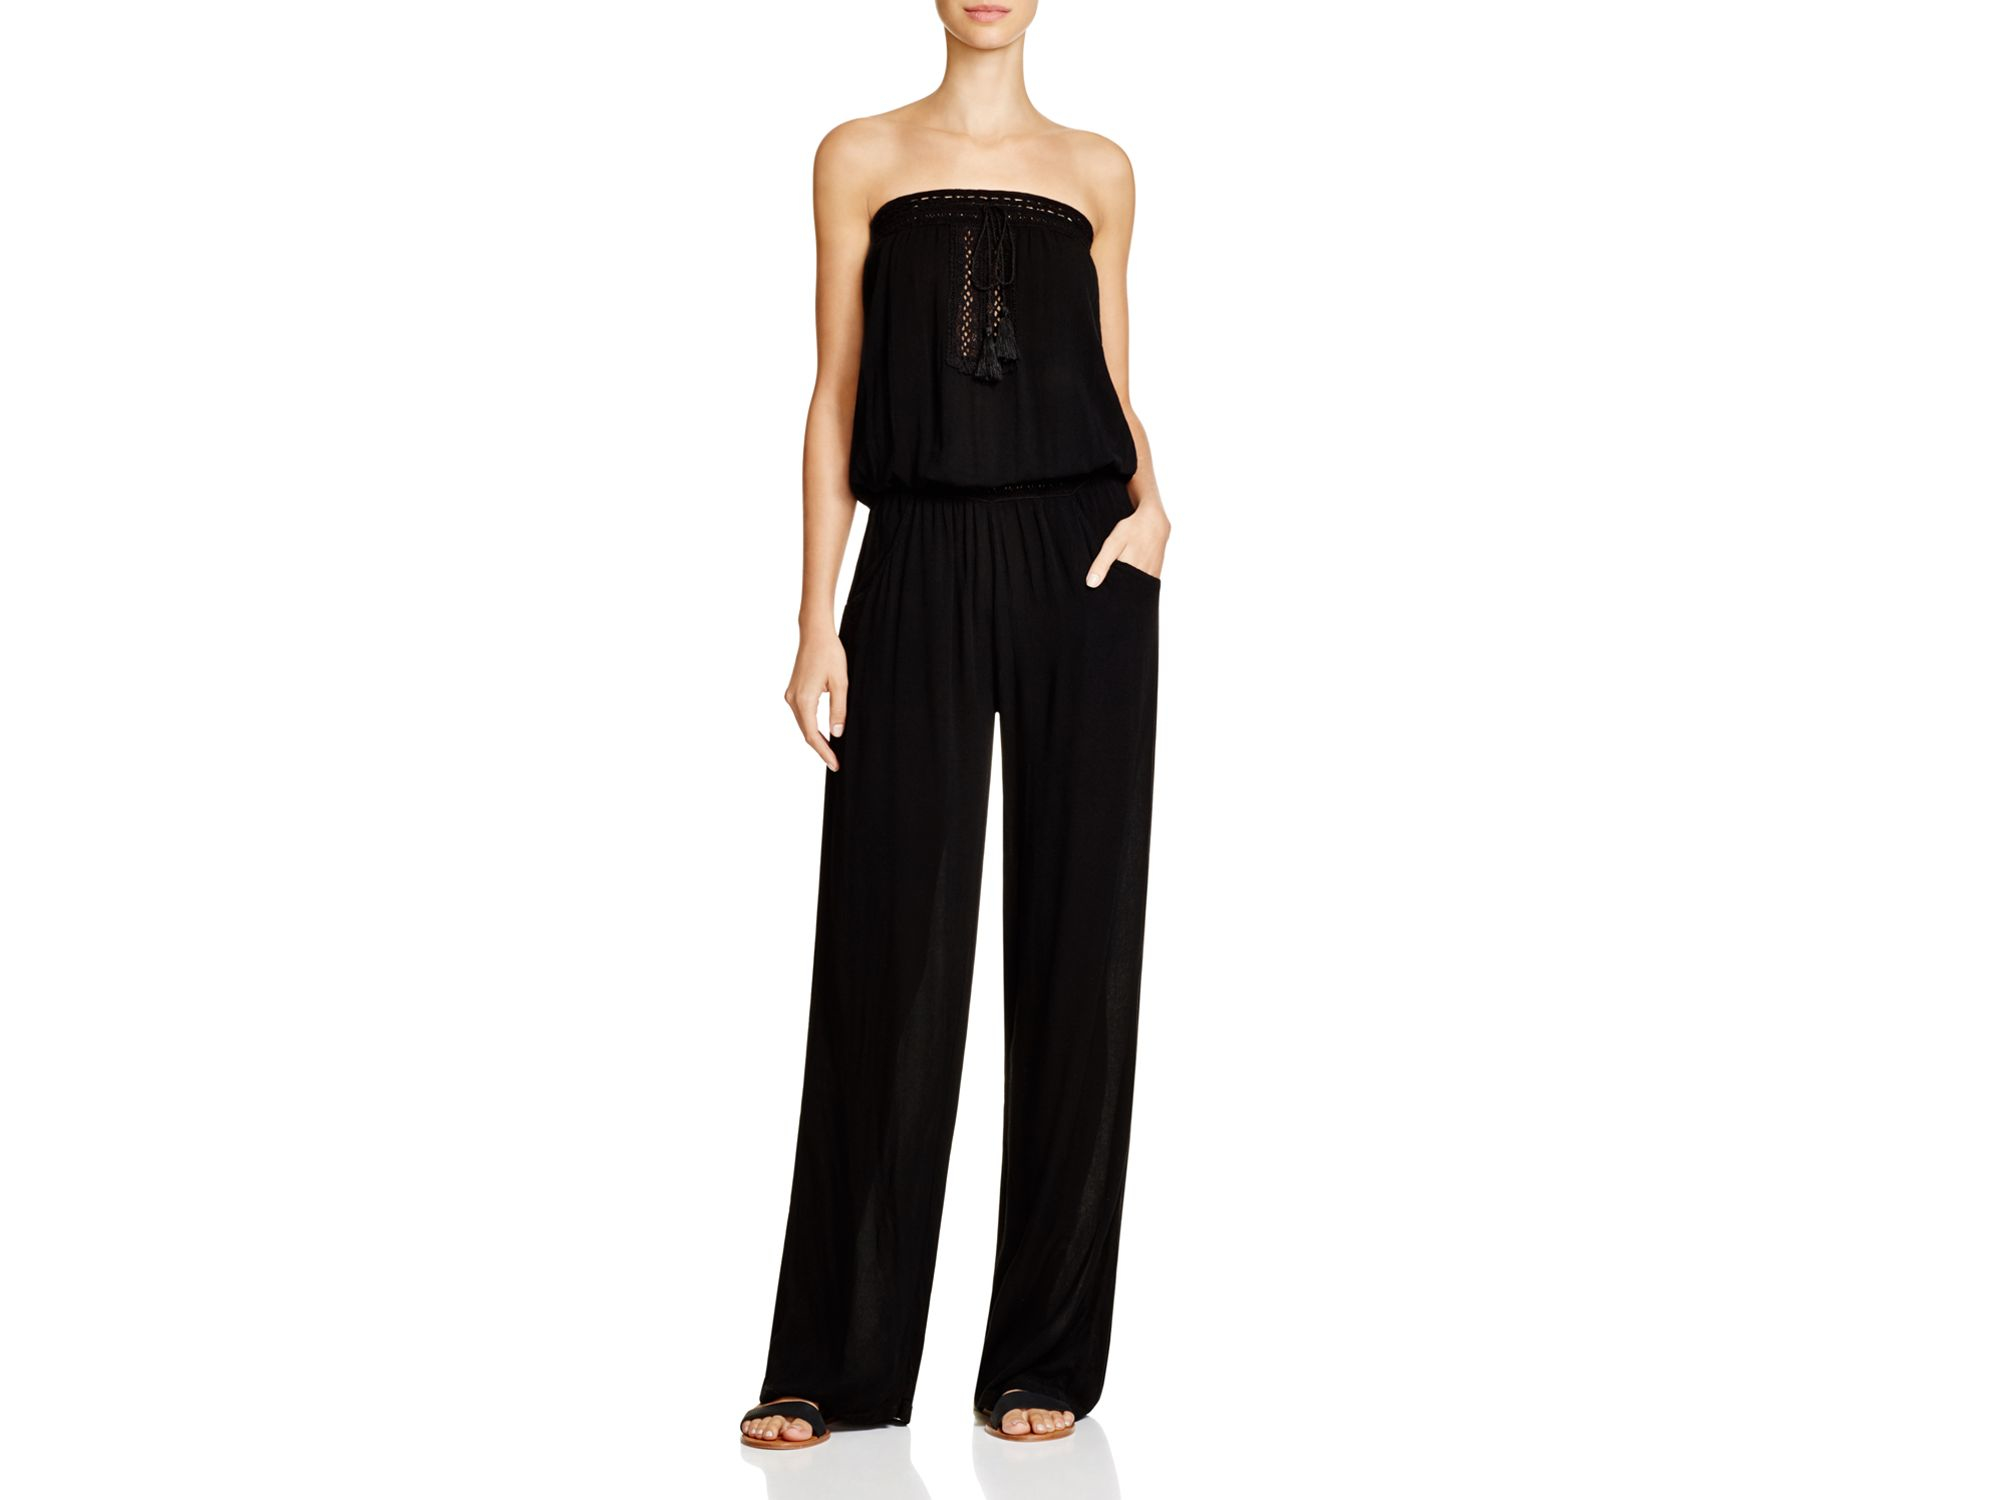 98a6c1ea89 Surf Gypsy Crocheted Trim Jumpsuit Swim Cover Up in Black - Lyst